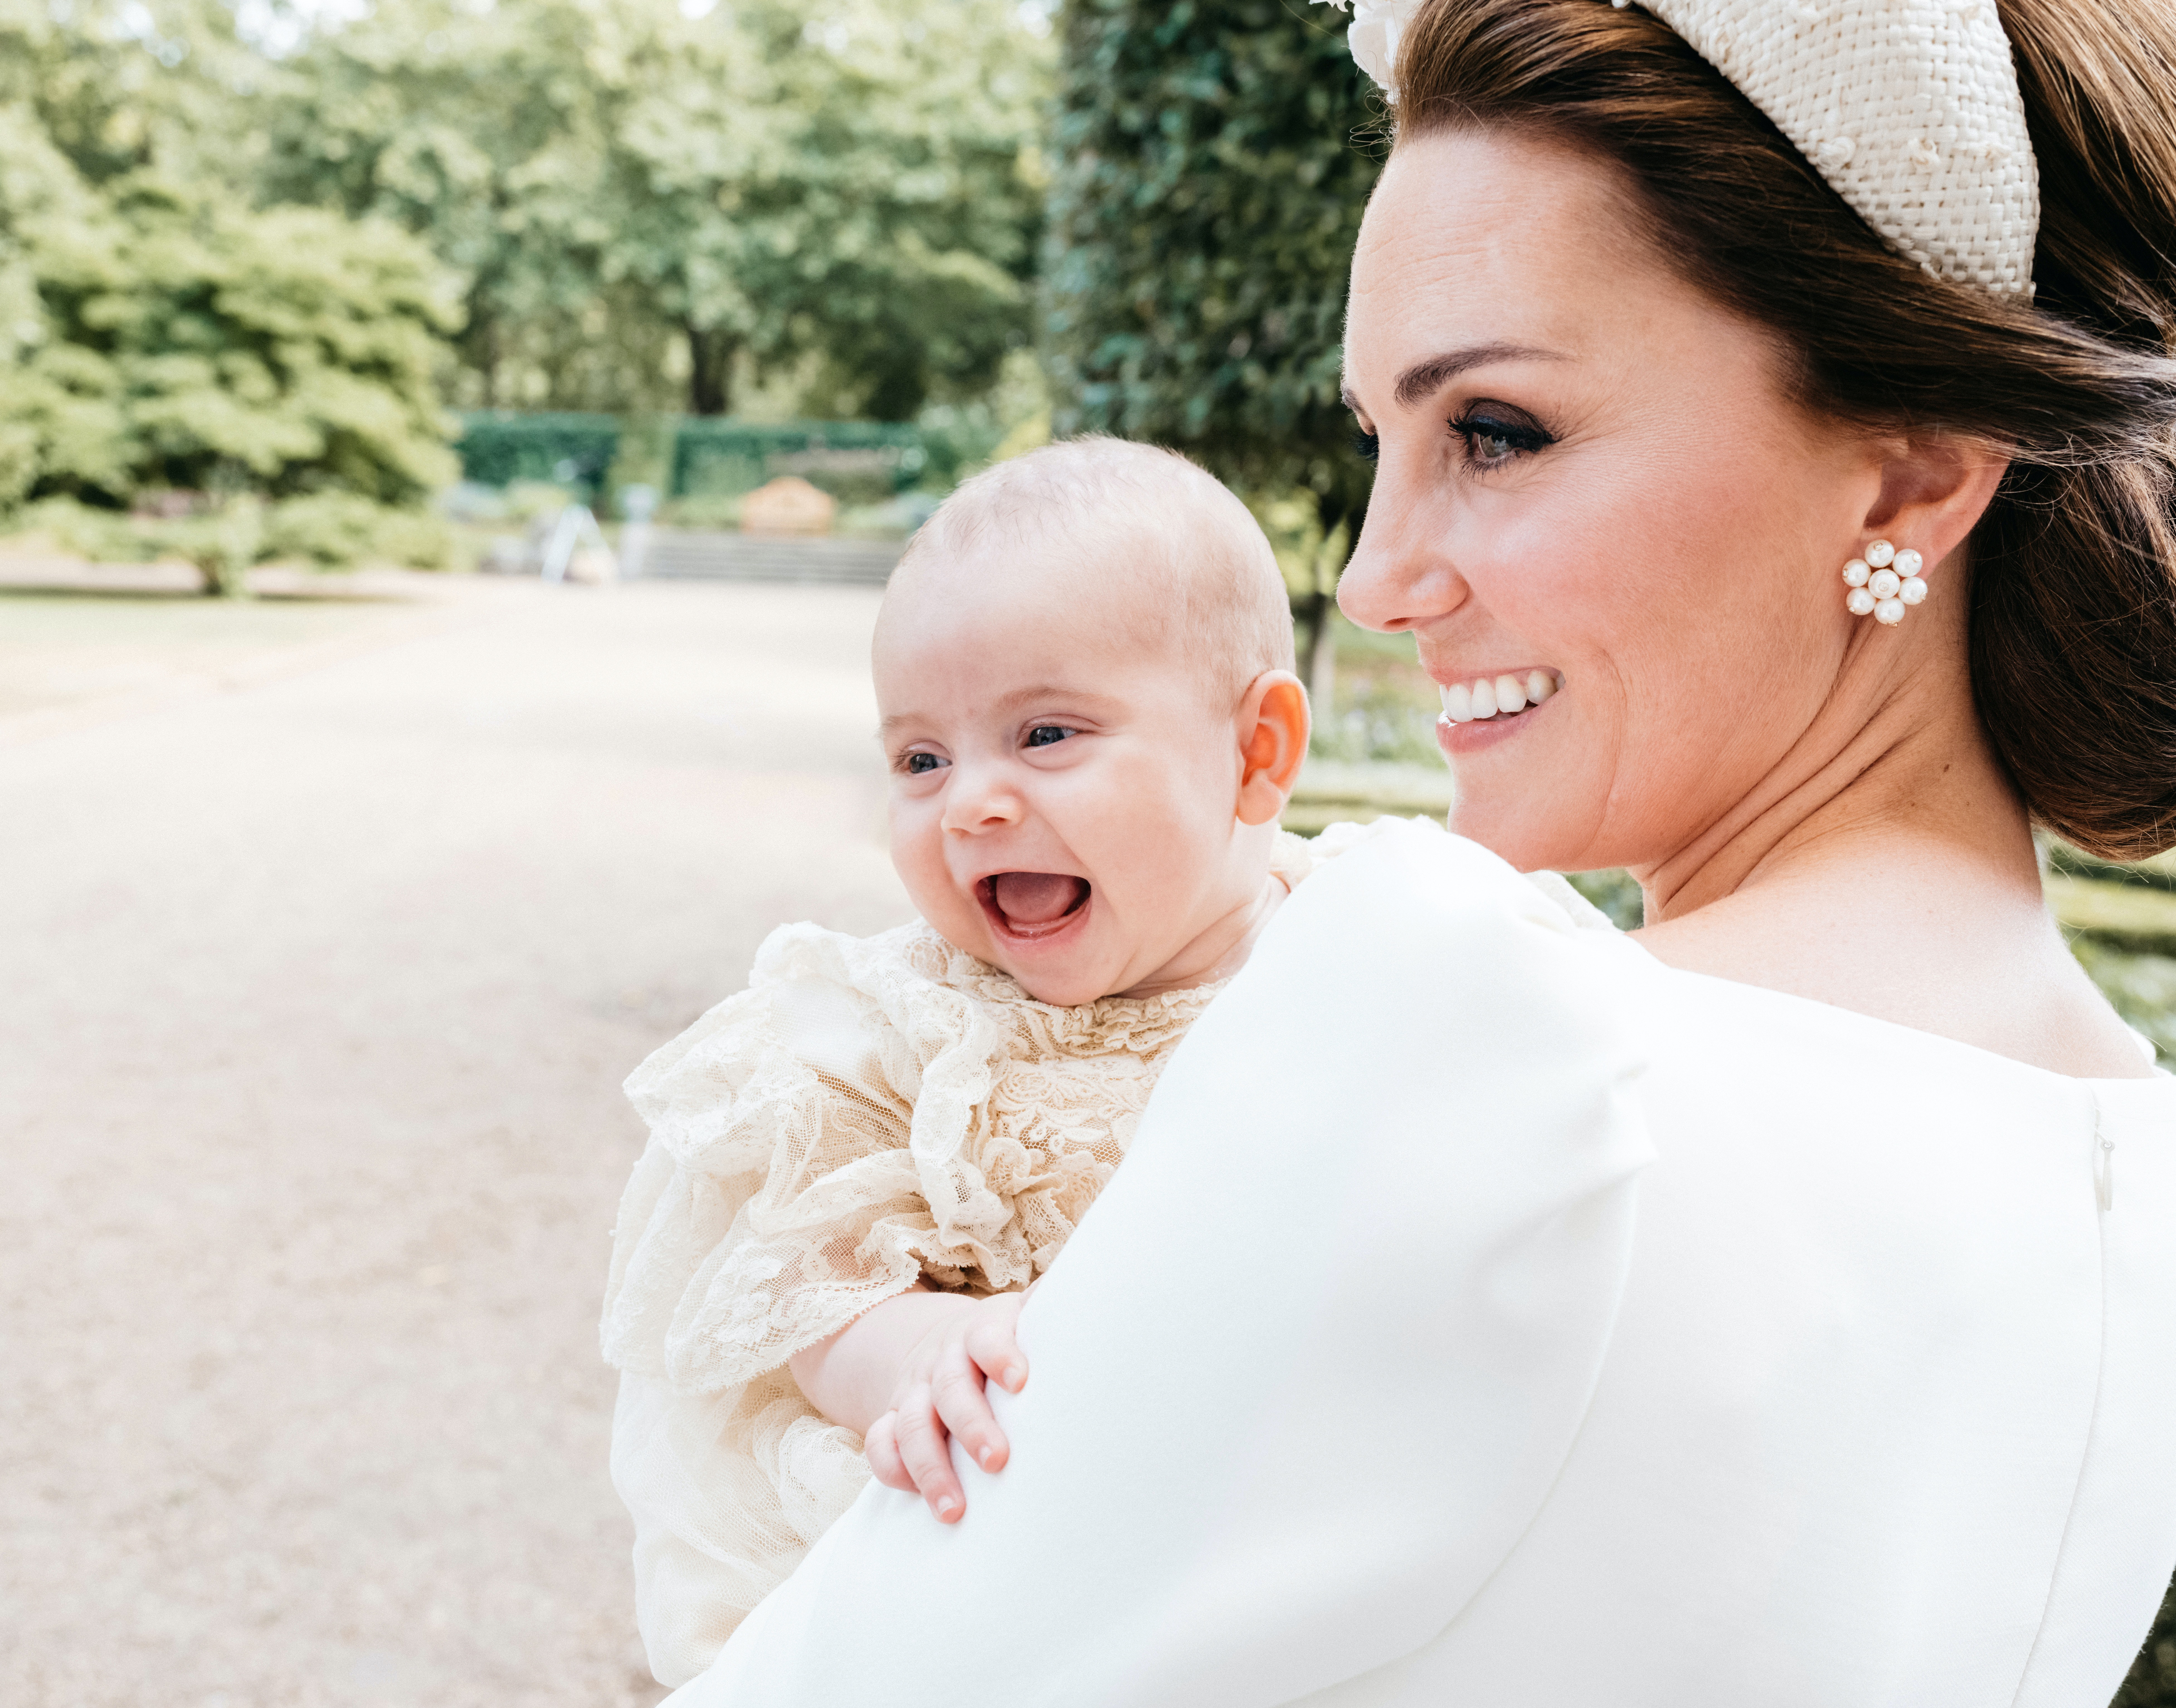 Prince Louis Is Awake And Smiling In This Super-Candid Christening Photo